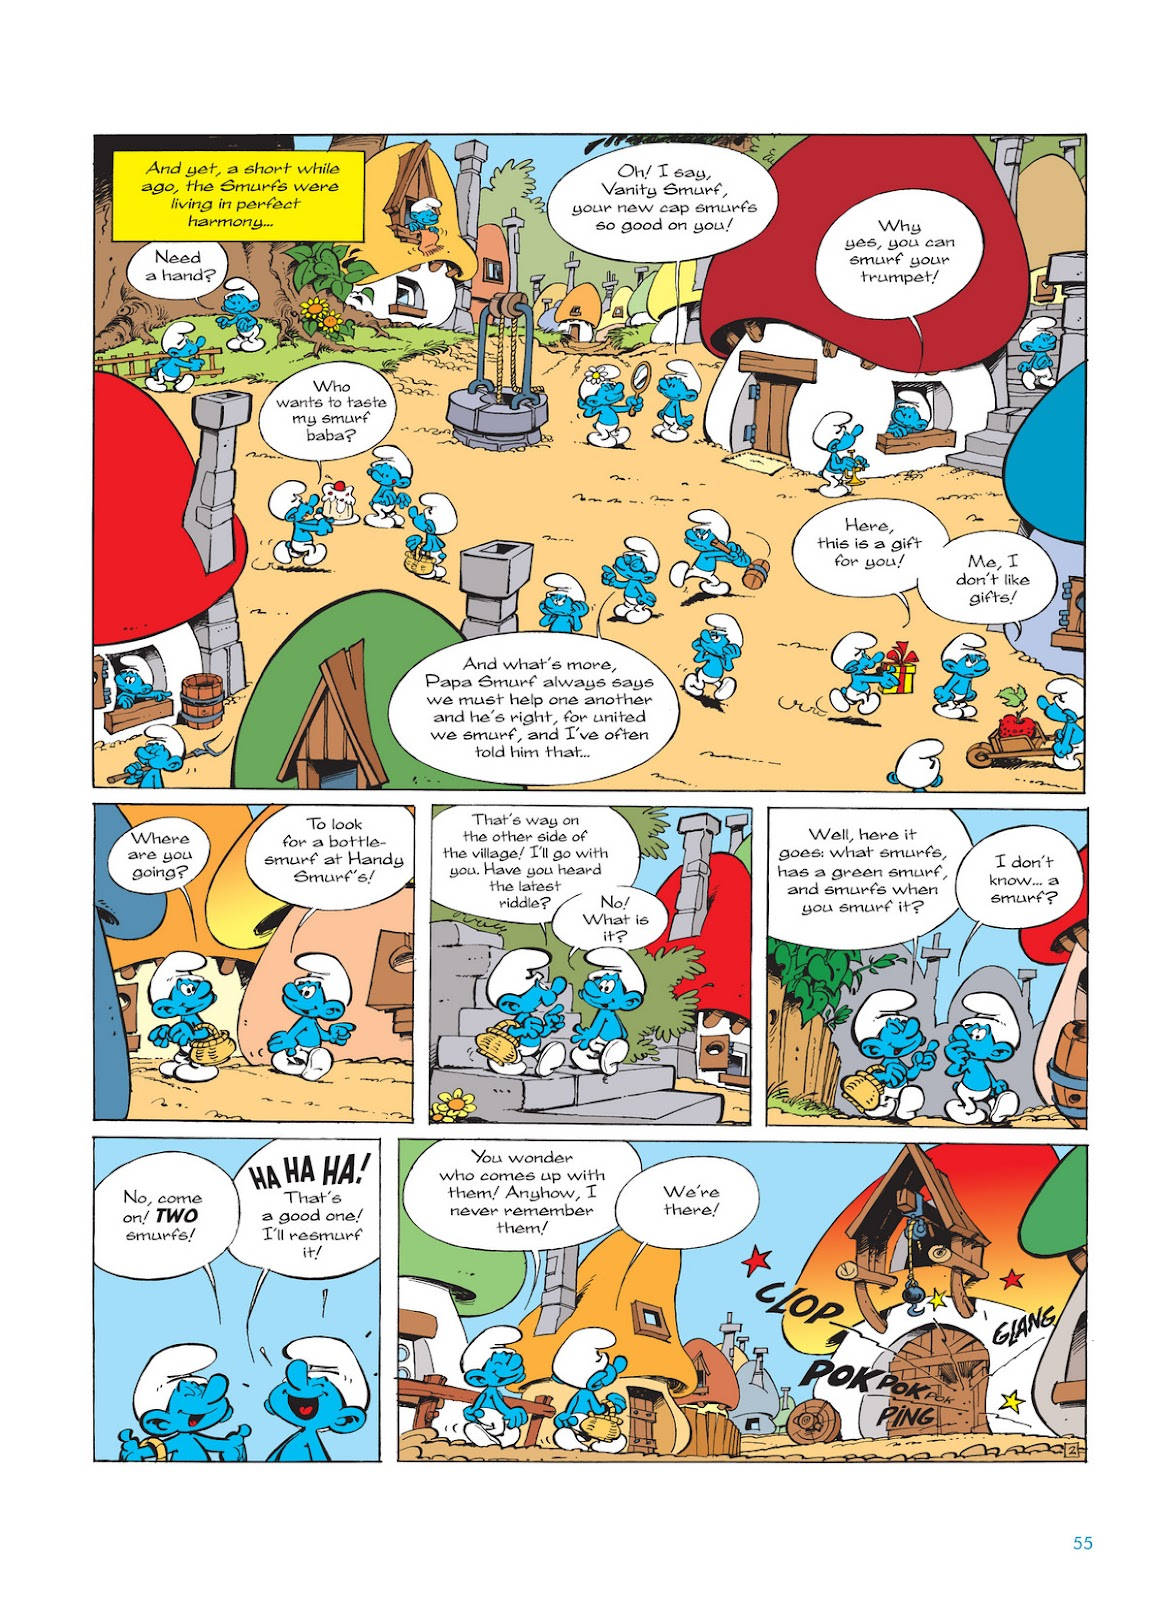 Read online The Smurfs comic -  Issue #11 - 55